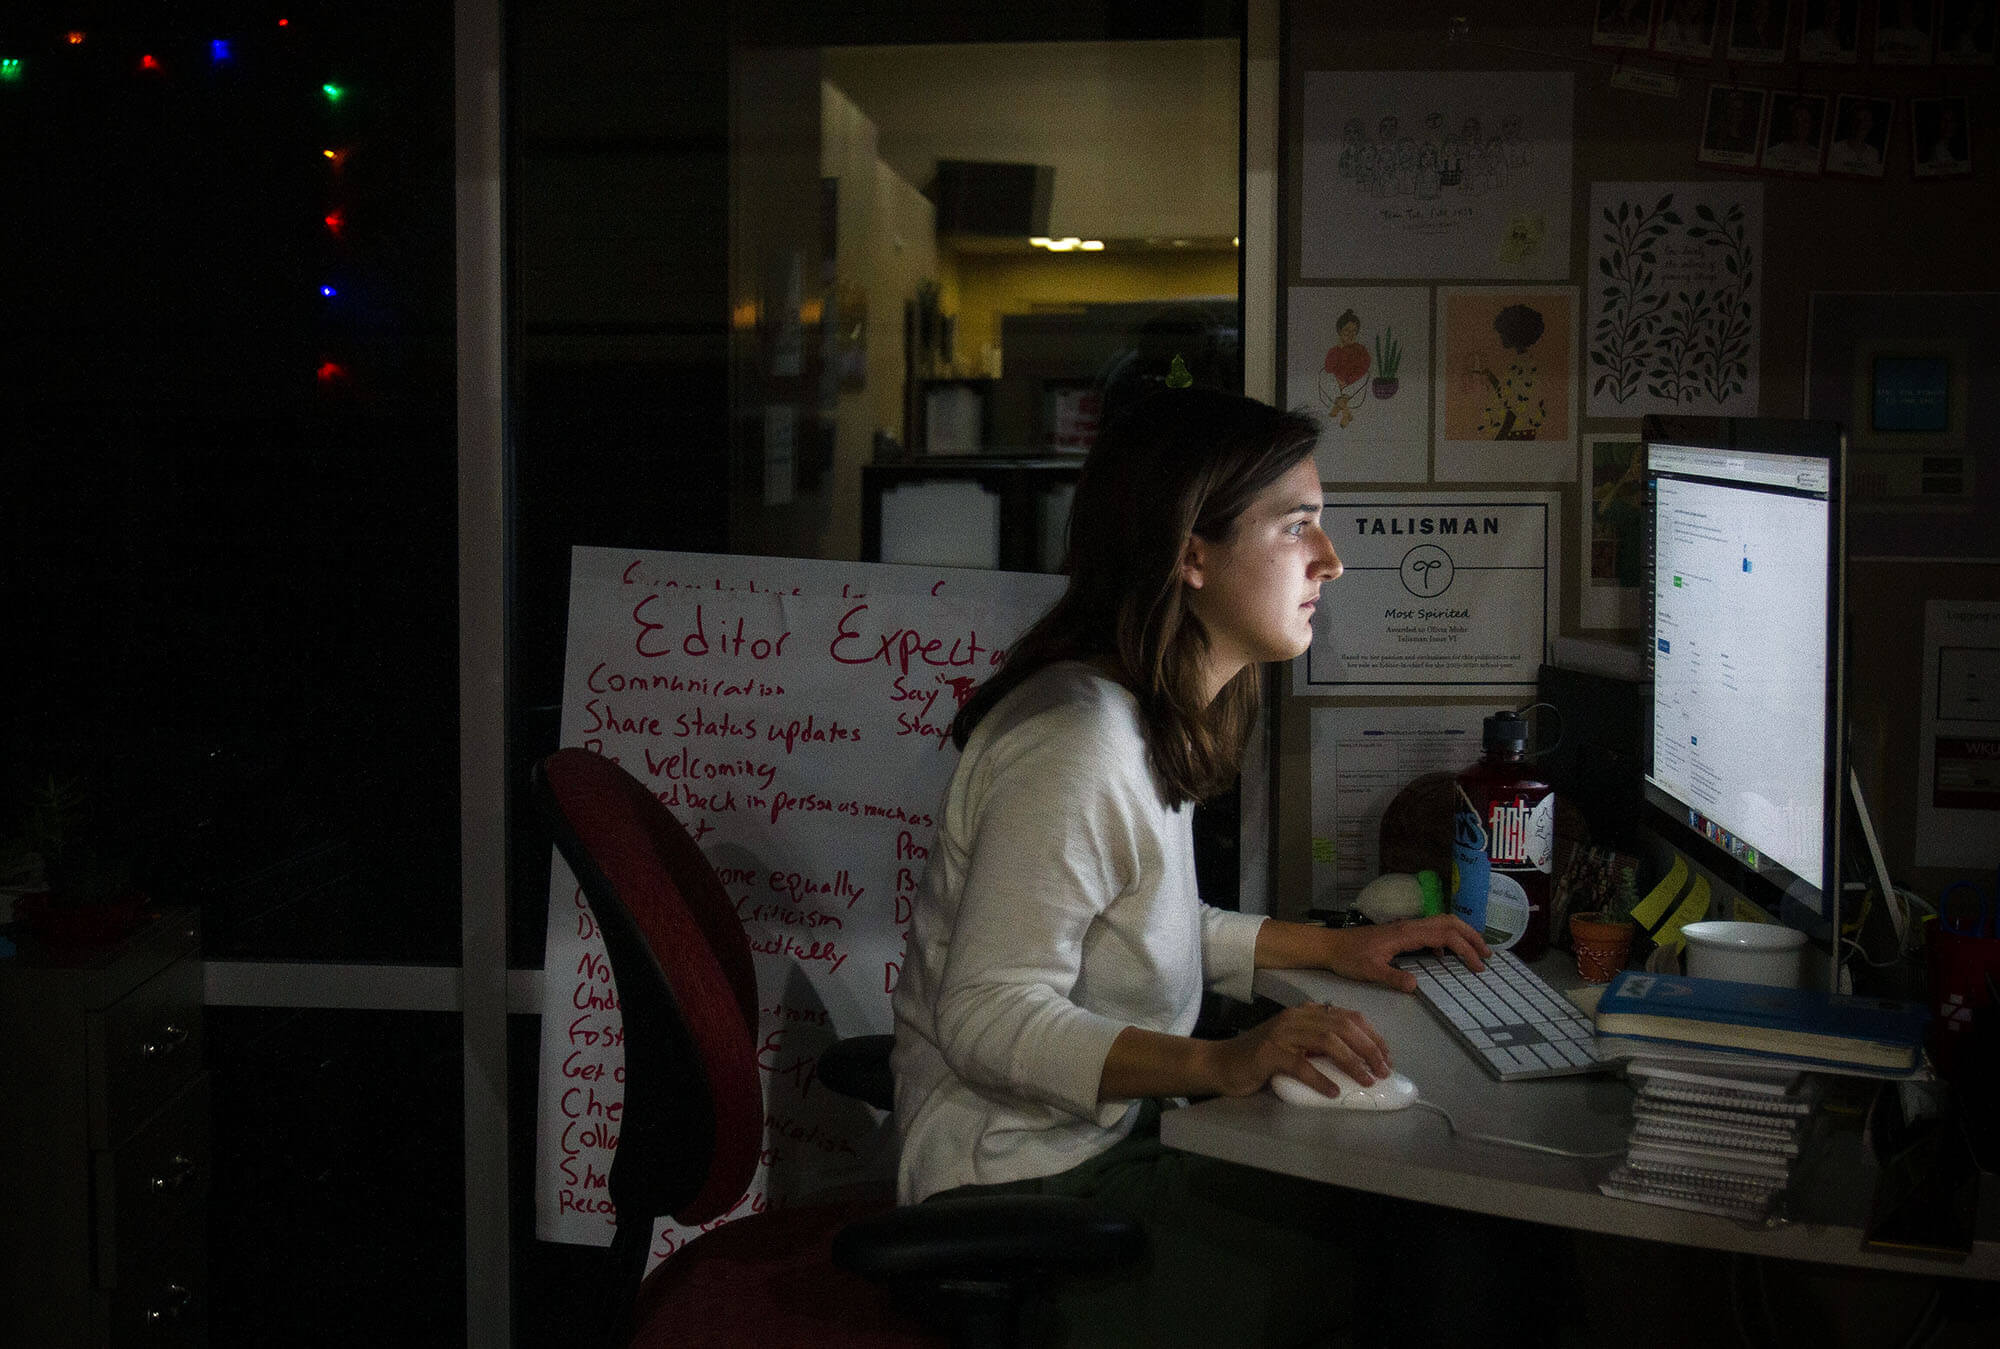 Girl Editing at Computer Compressed Image